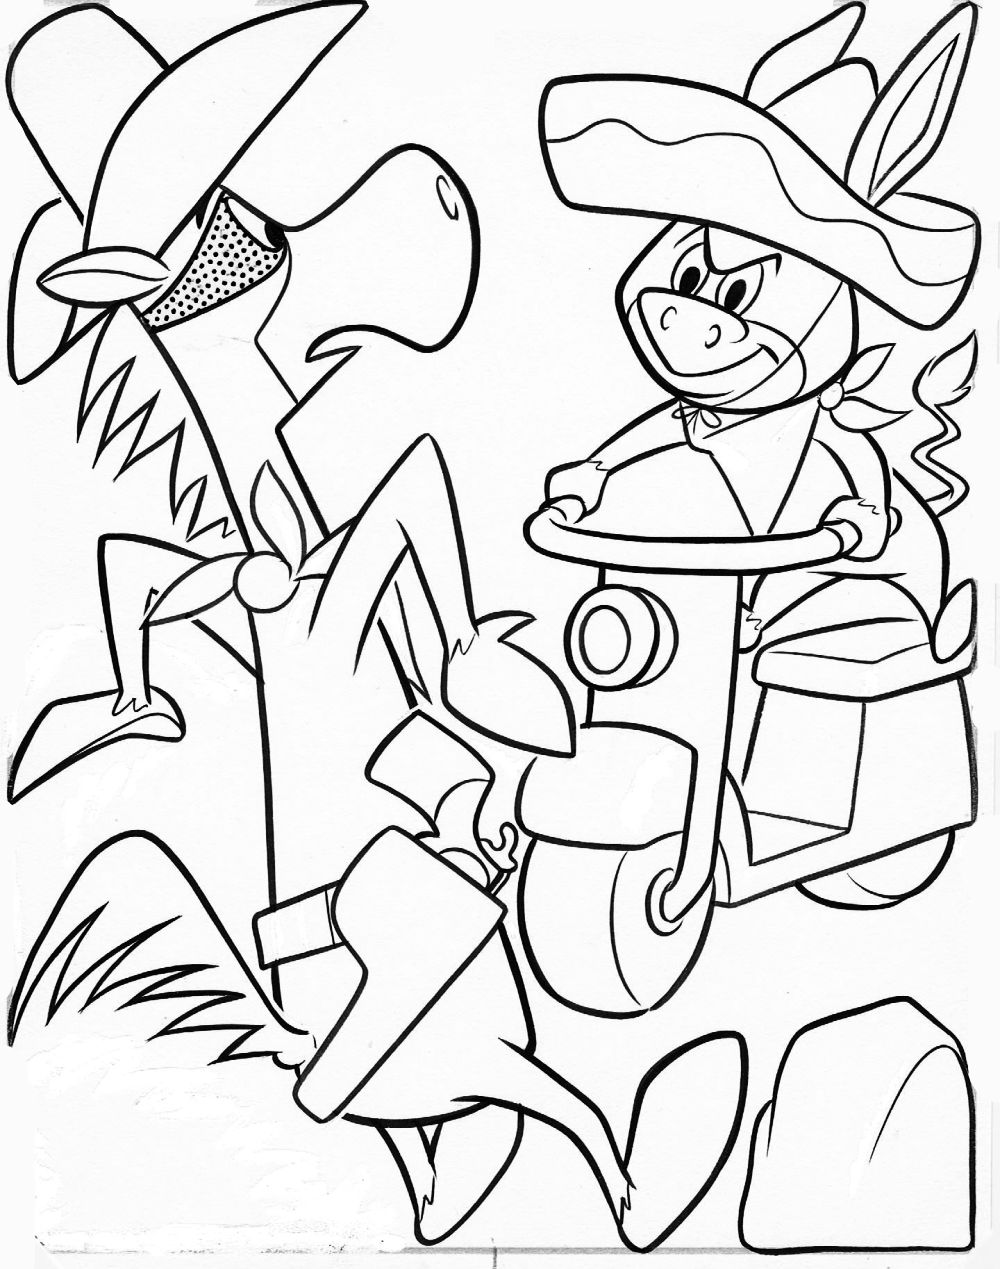 hanna barbera coloring pages - photo#3